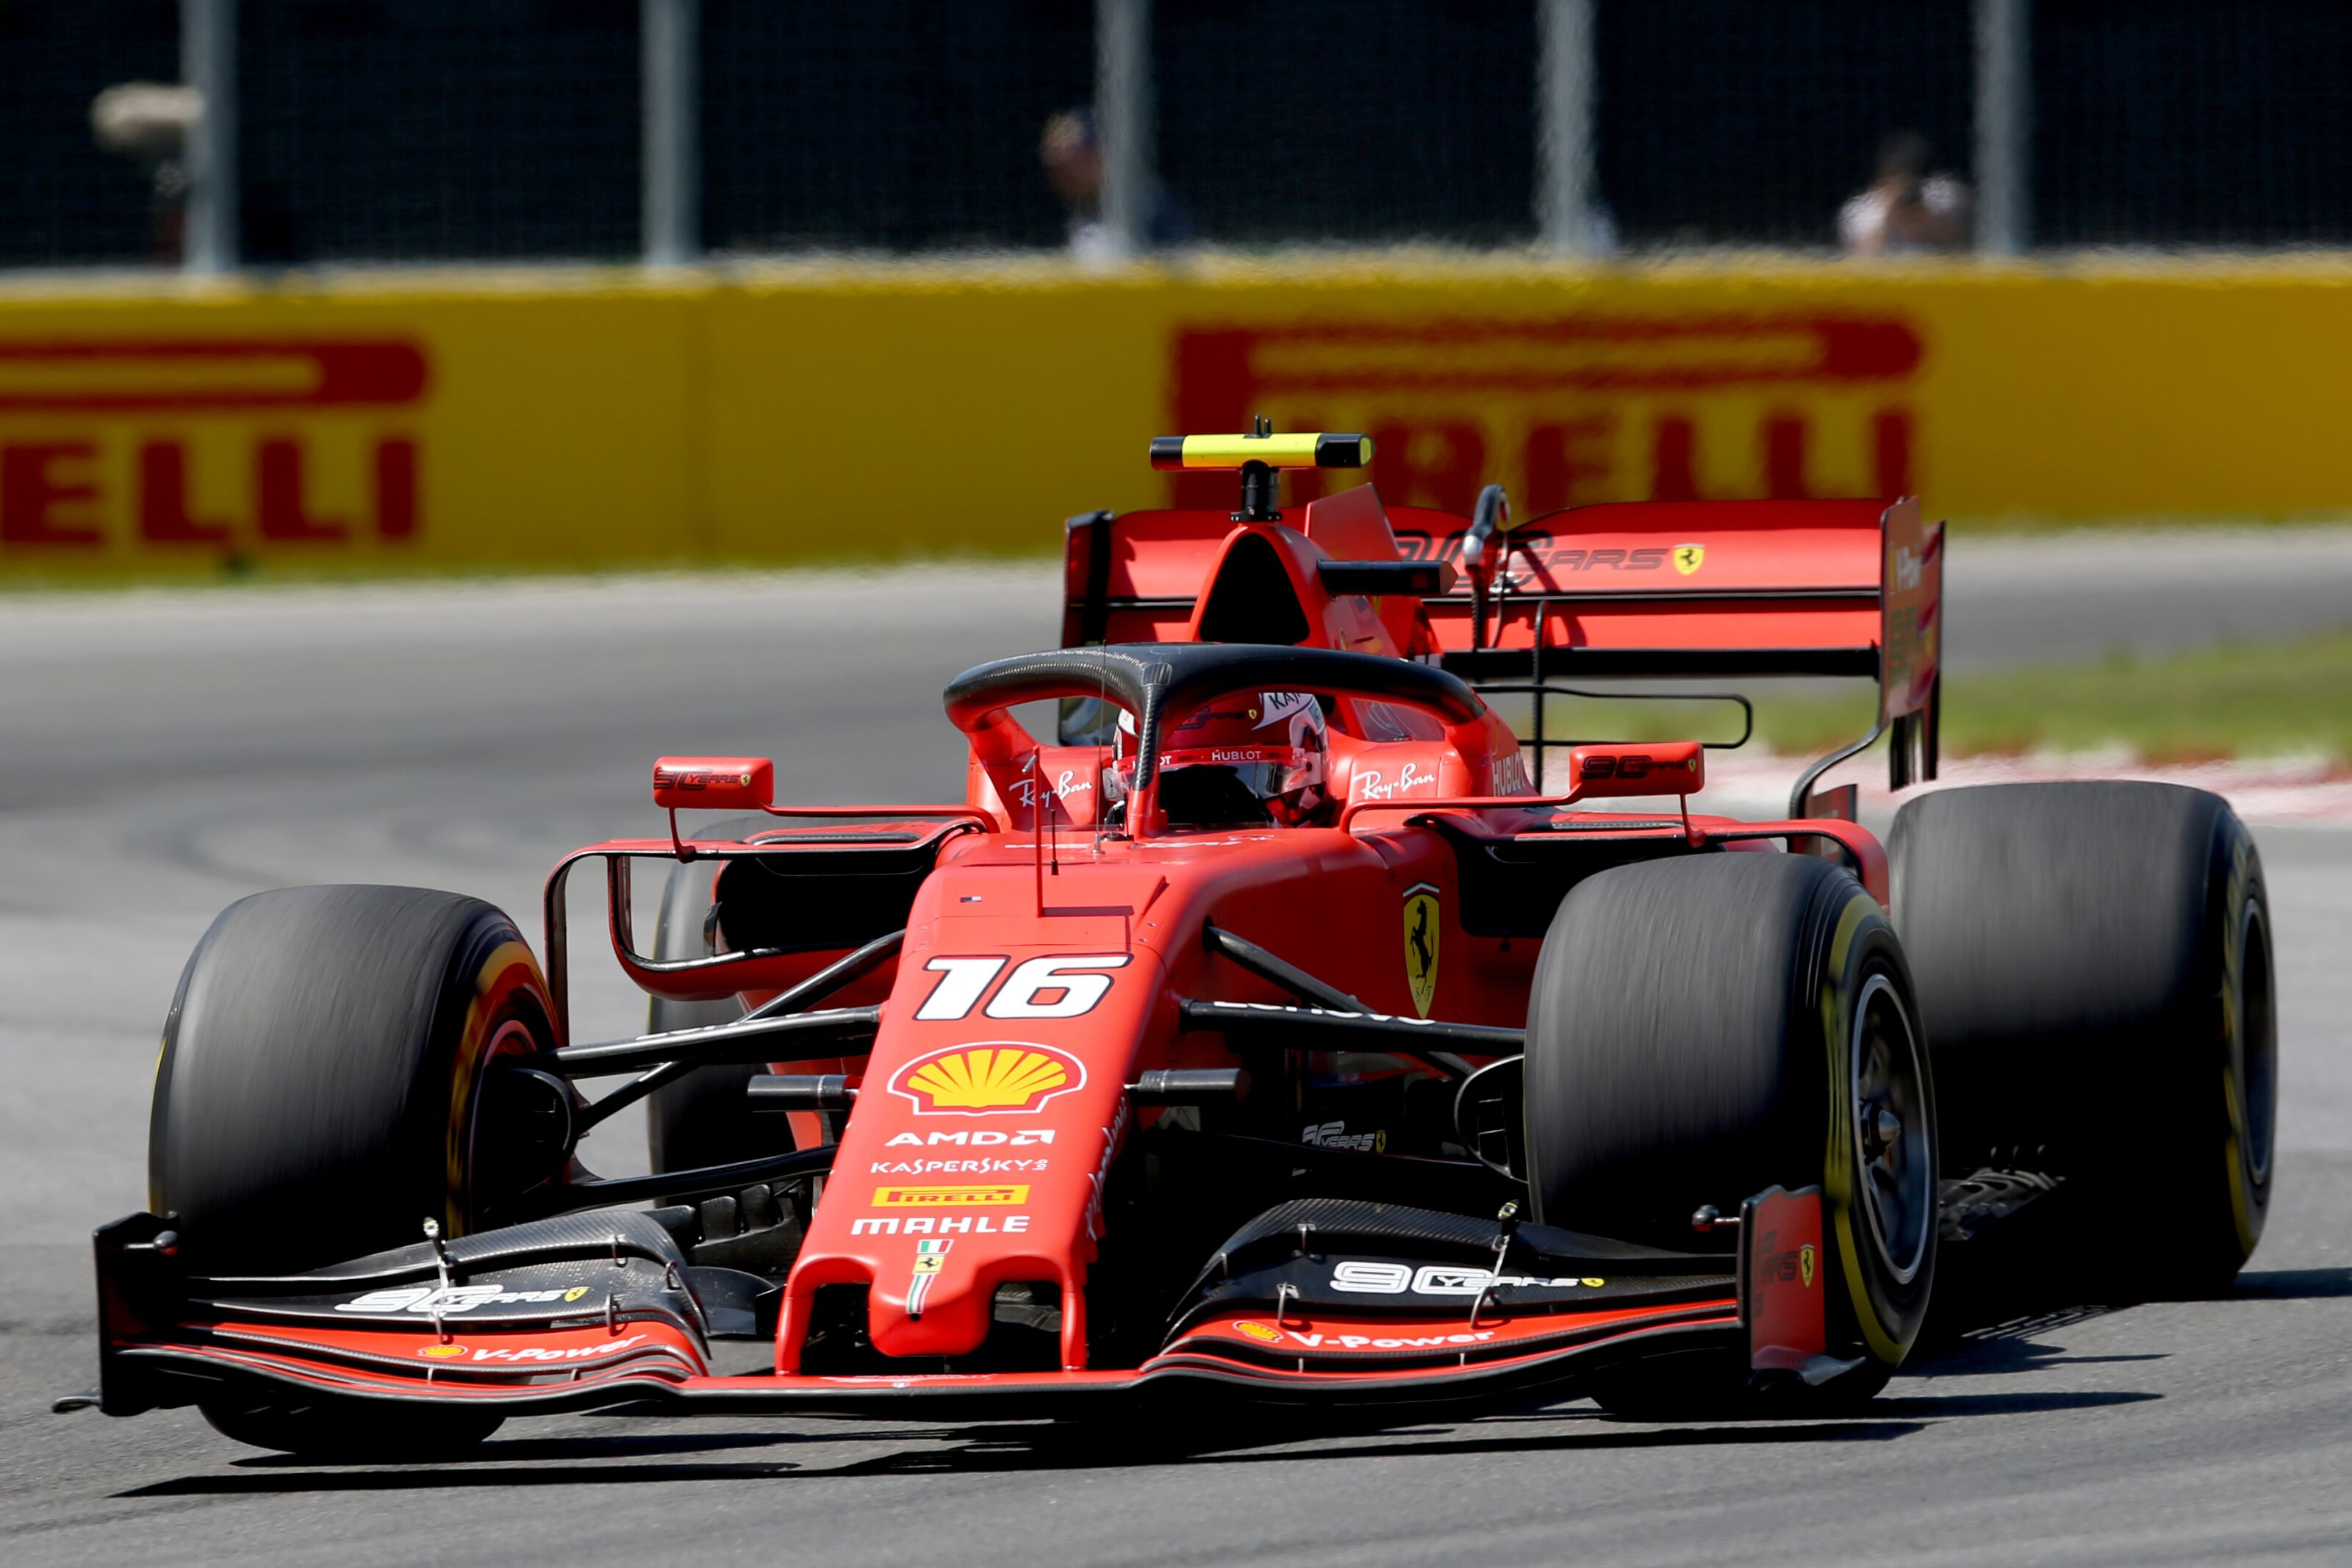 Formula 1: Ferrari 'forgot' to inform Charles Leclerc of Sebastian Vettel's penalty